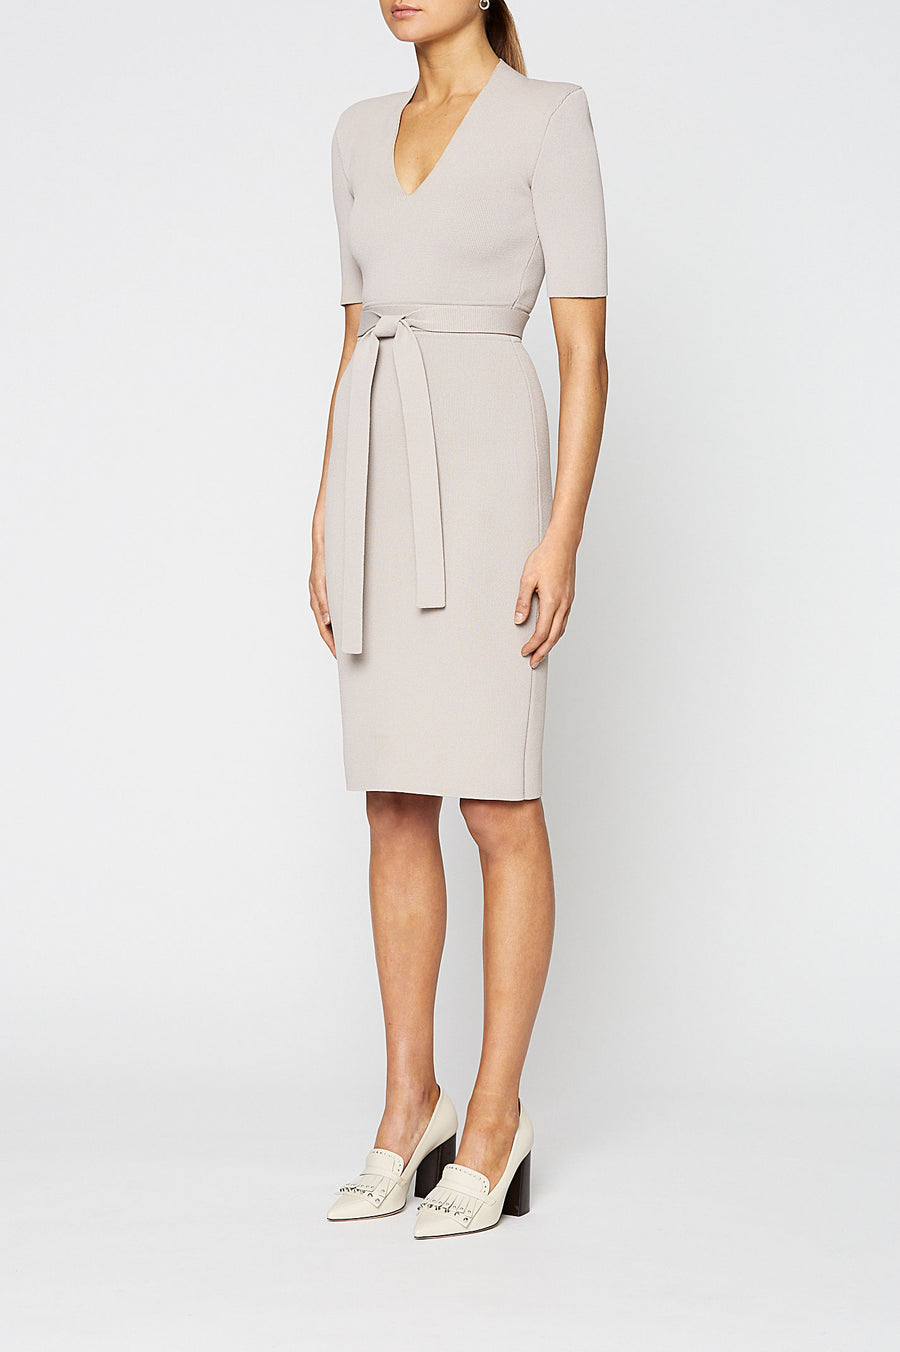 Crepe Knit V Neck Dress, fitted silhouette, waist seam belt, mid length sleeve, key hole V-neckline, falls just below the knee, Color Oyster